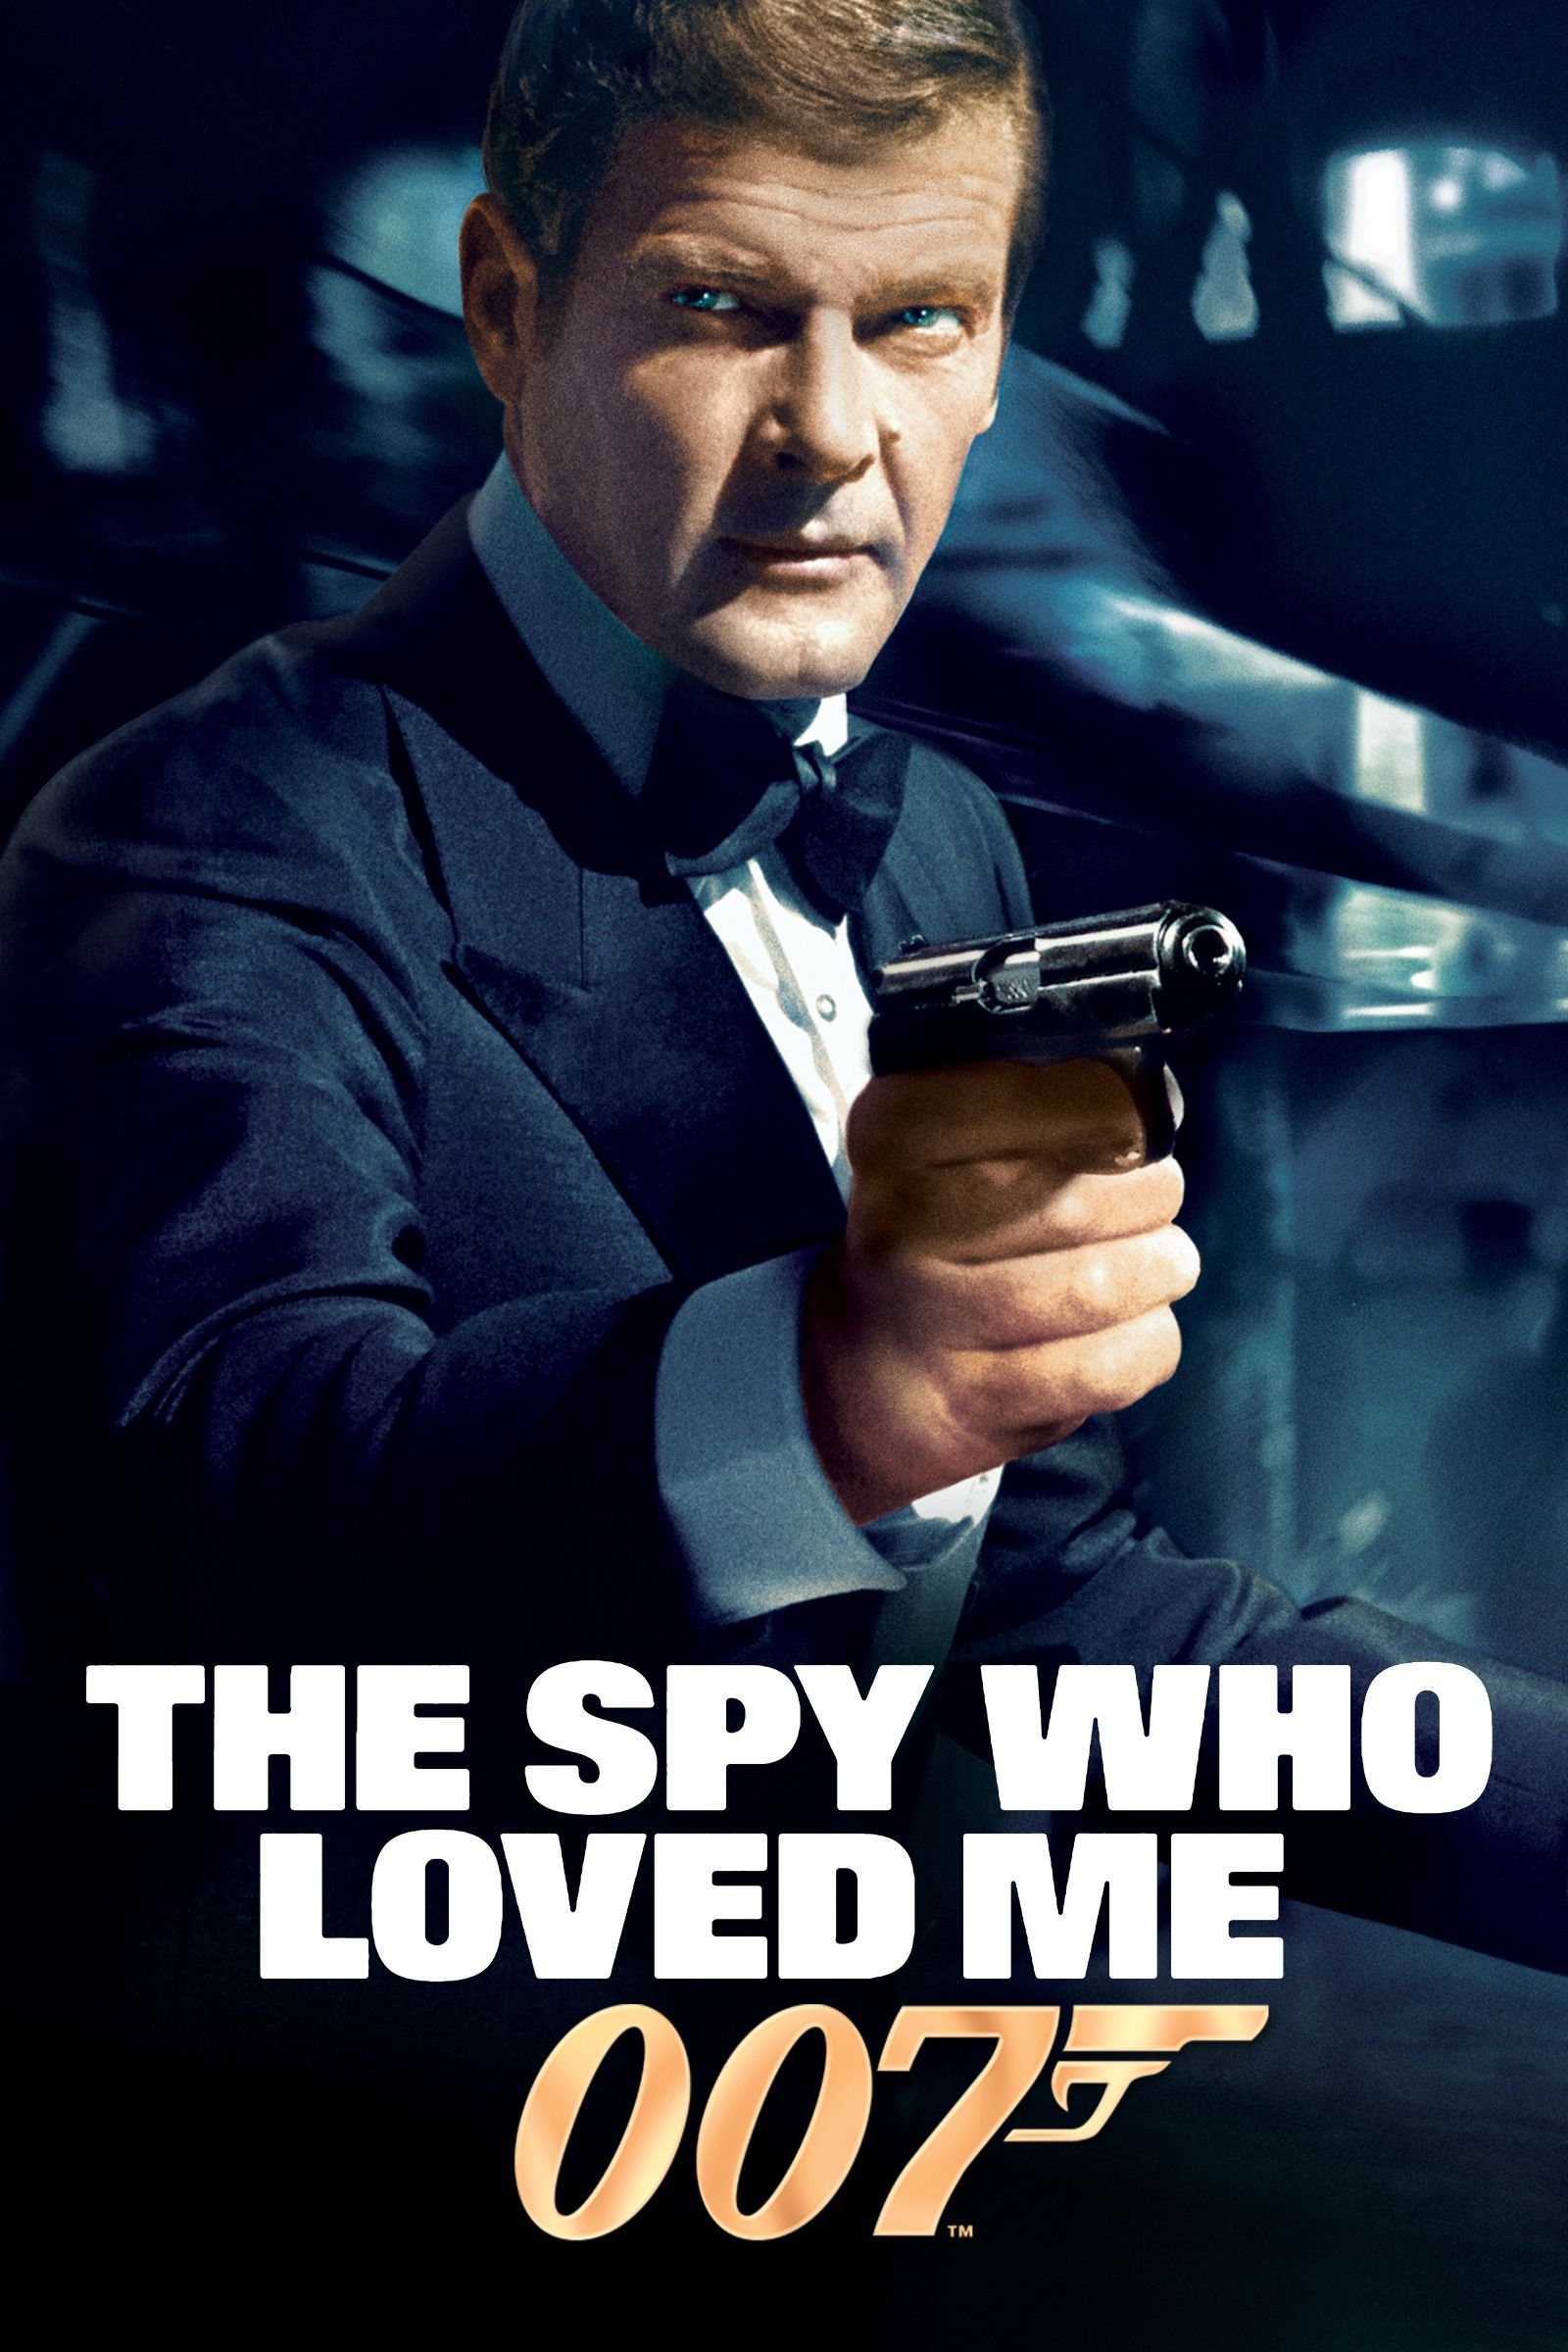 The Spy Who Loved Me Movie Ticket Wkwotuml Jpg With Images